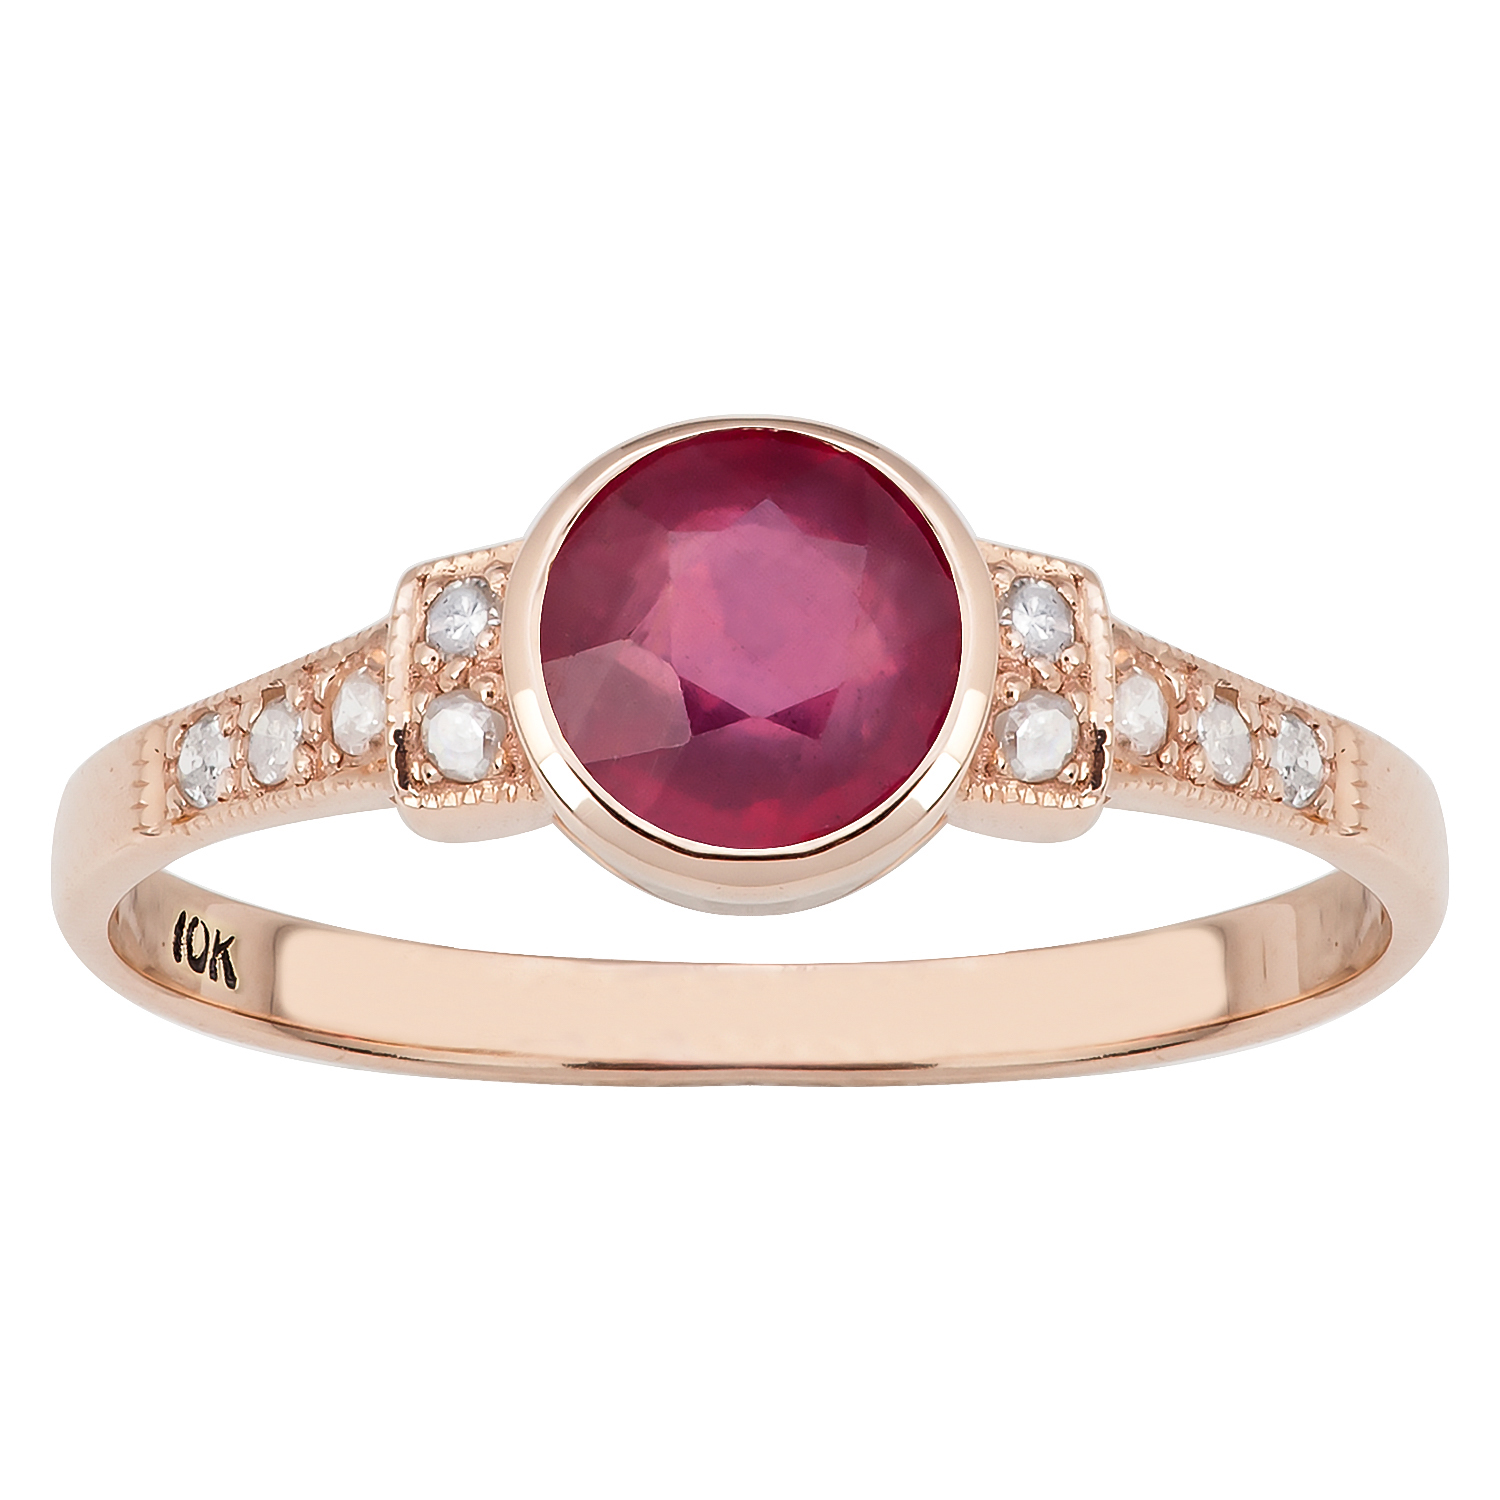 10k rose gold vintage style genuine round ruby and diamond ring ebay. Black Bedroom Furniture Sets. Home Design Ideas